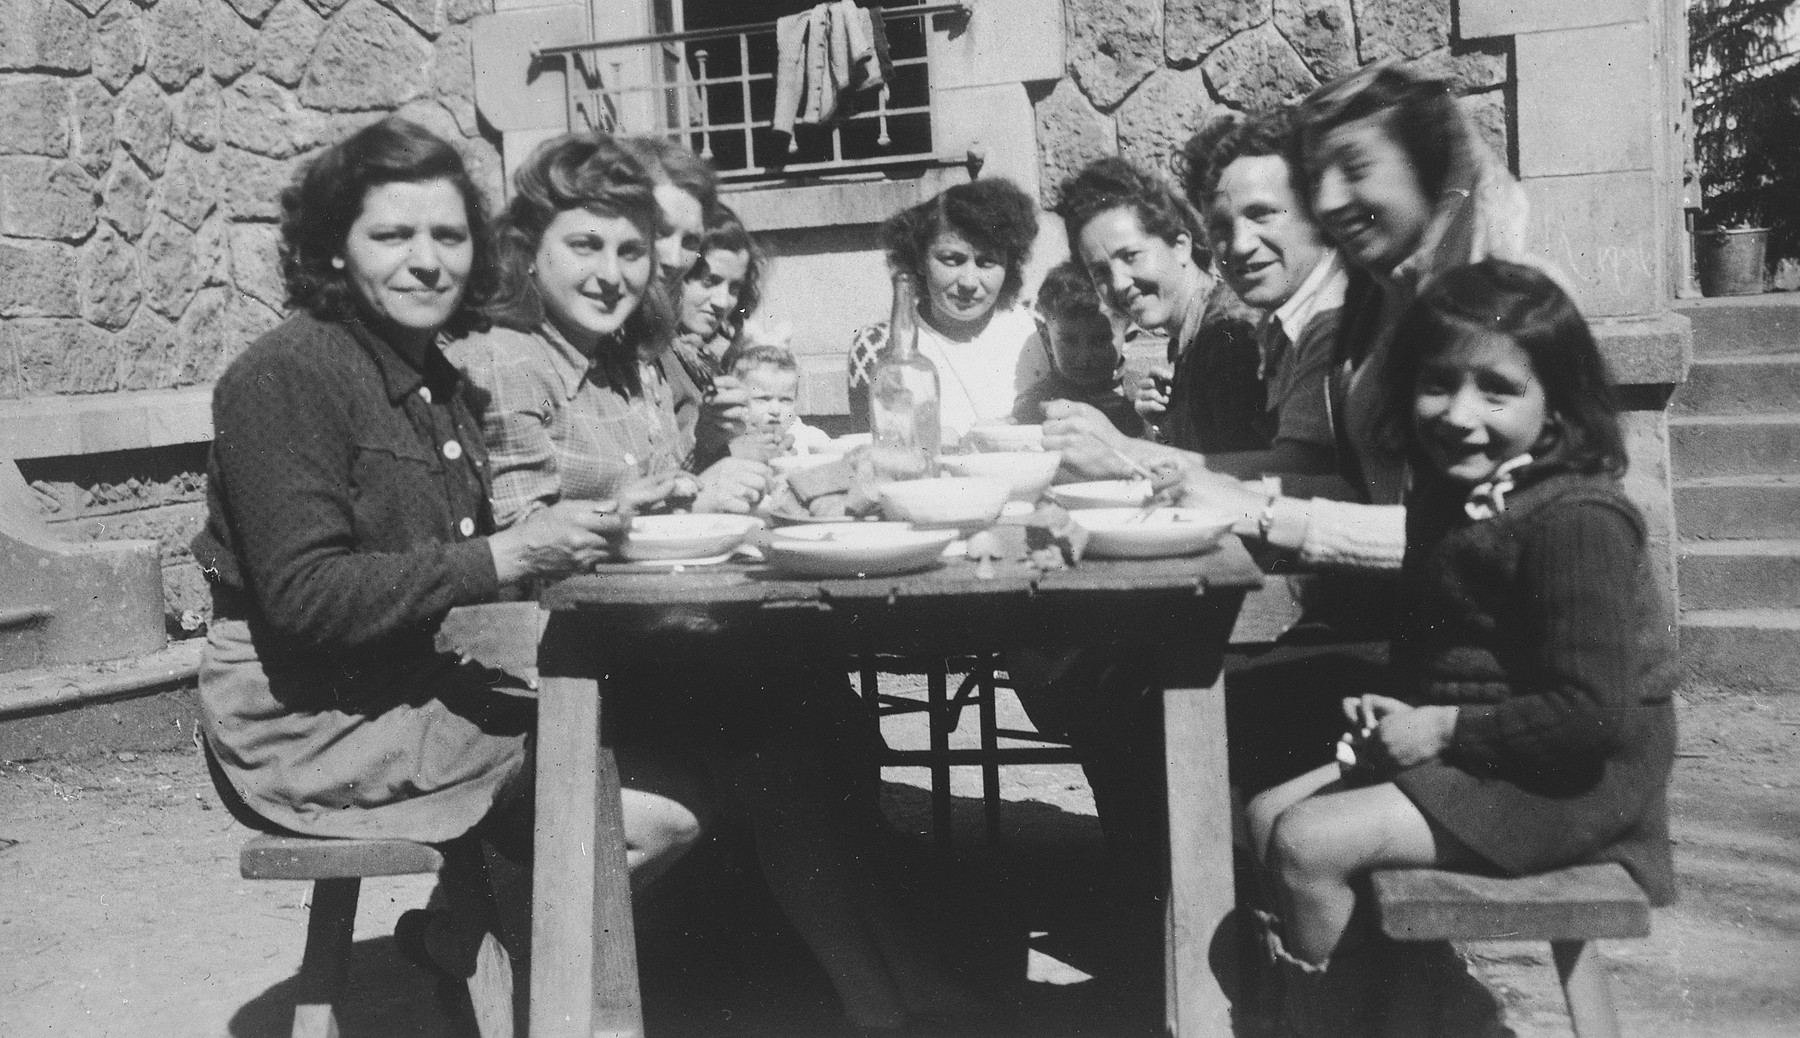 Jewish girls and teenagers eat outside in a courtyard in a postwar children's home in Feneyrols, France.